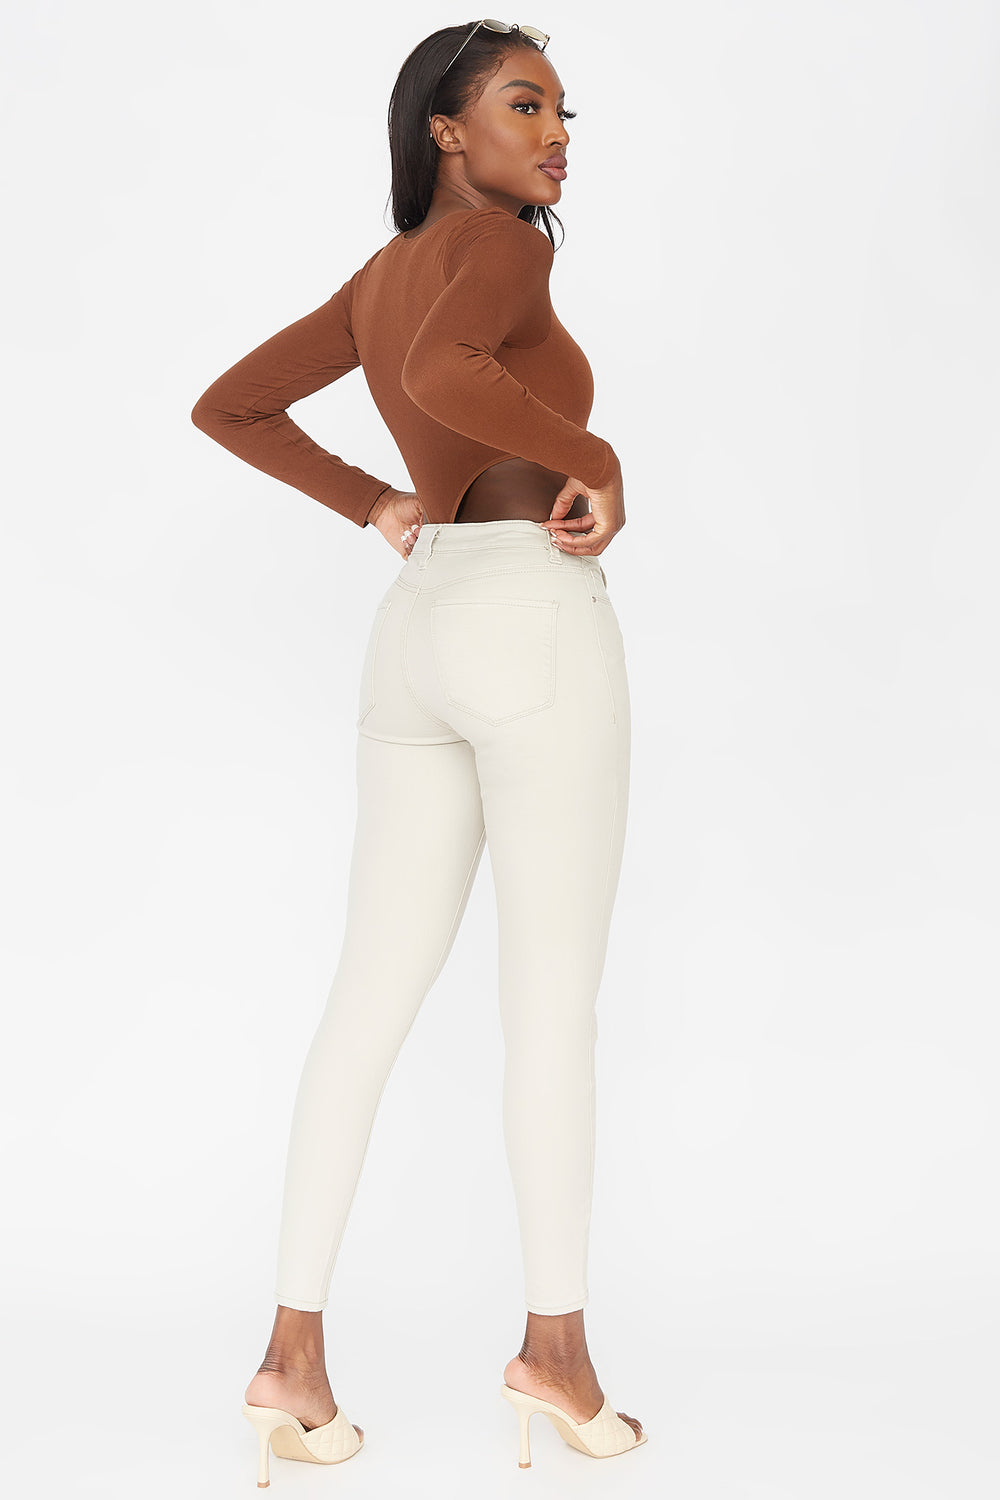 Refuge Miami High-Rise Coloured Skinny Jean Khaki